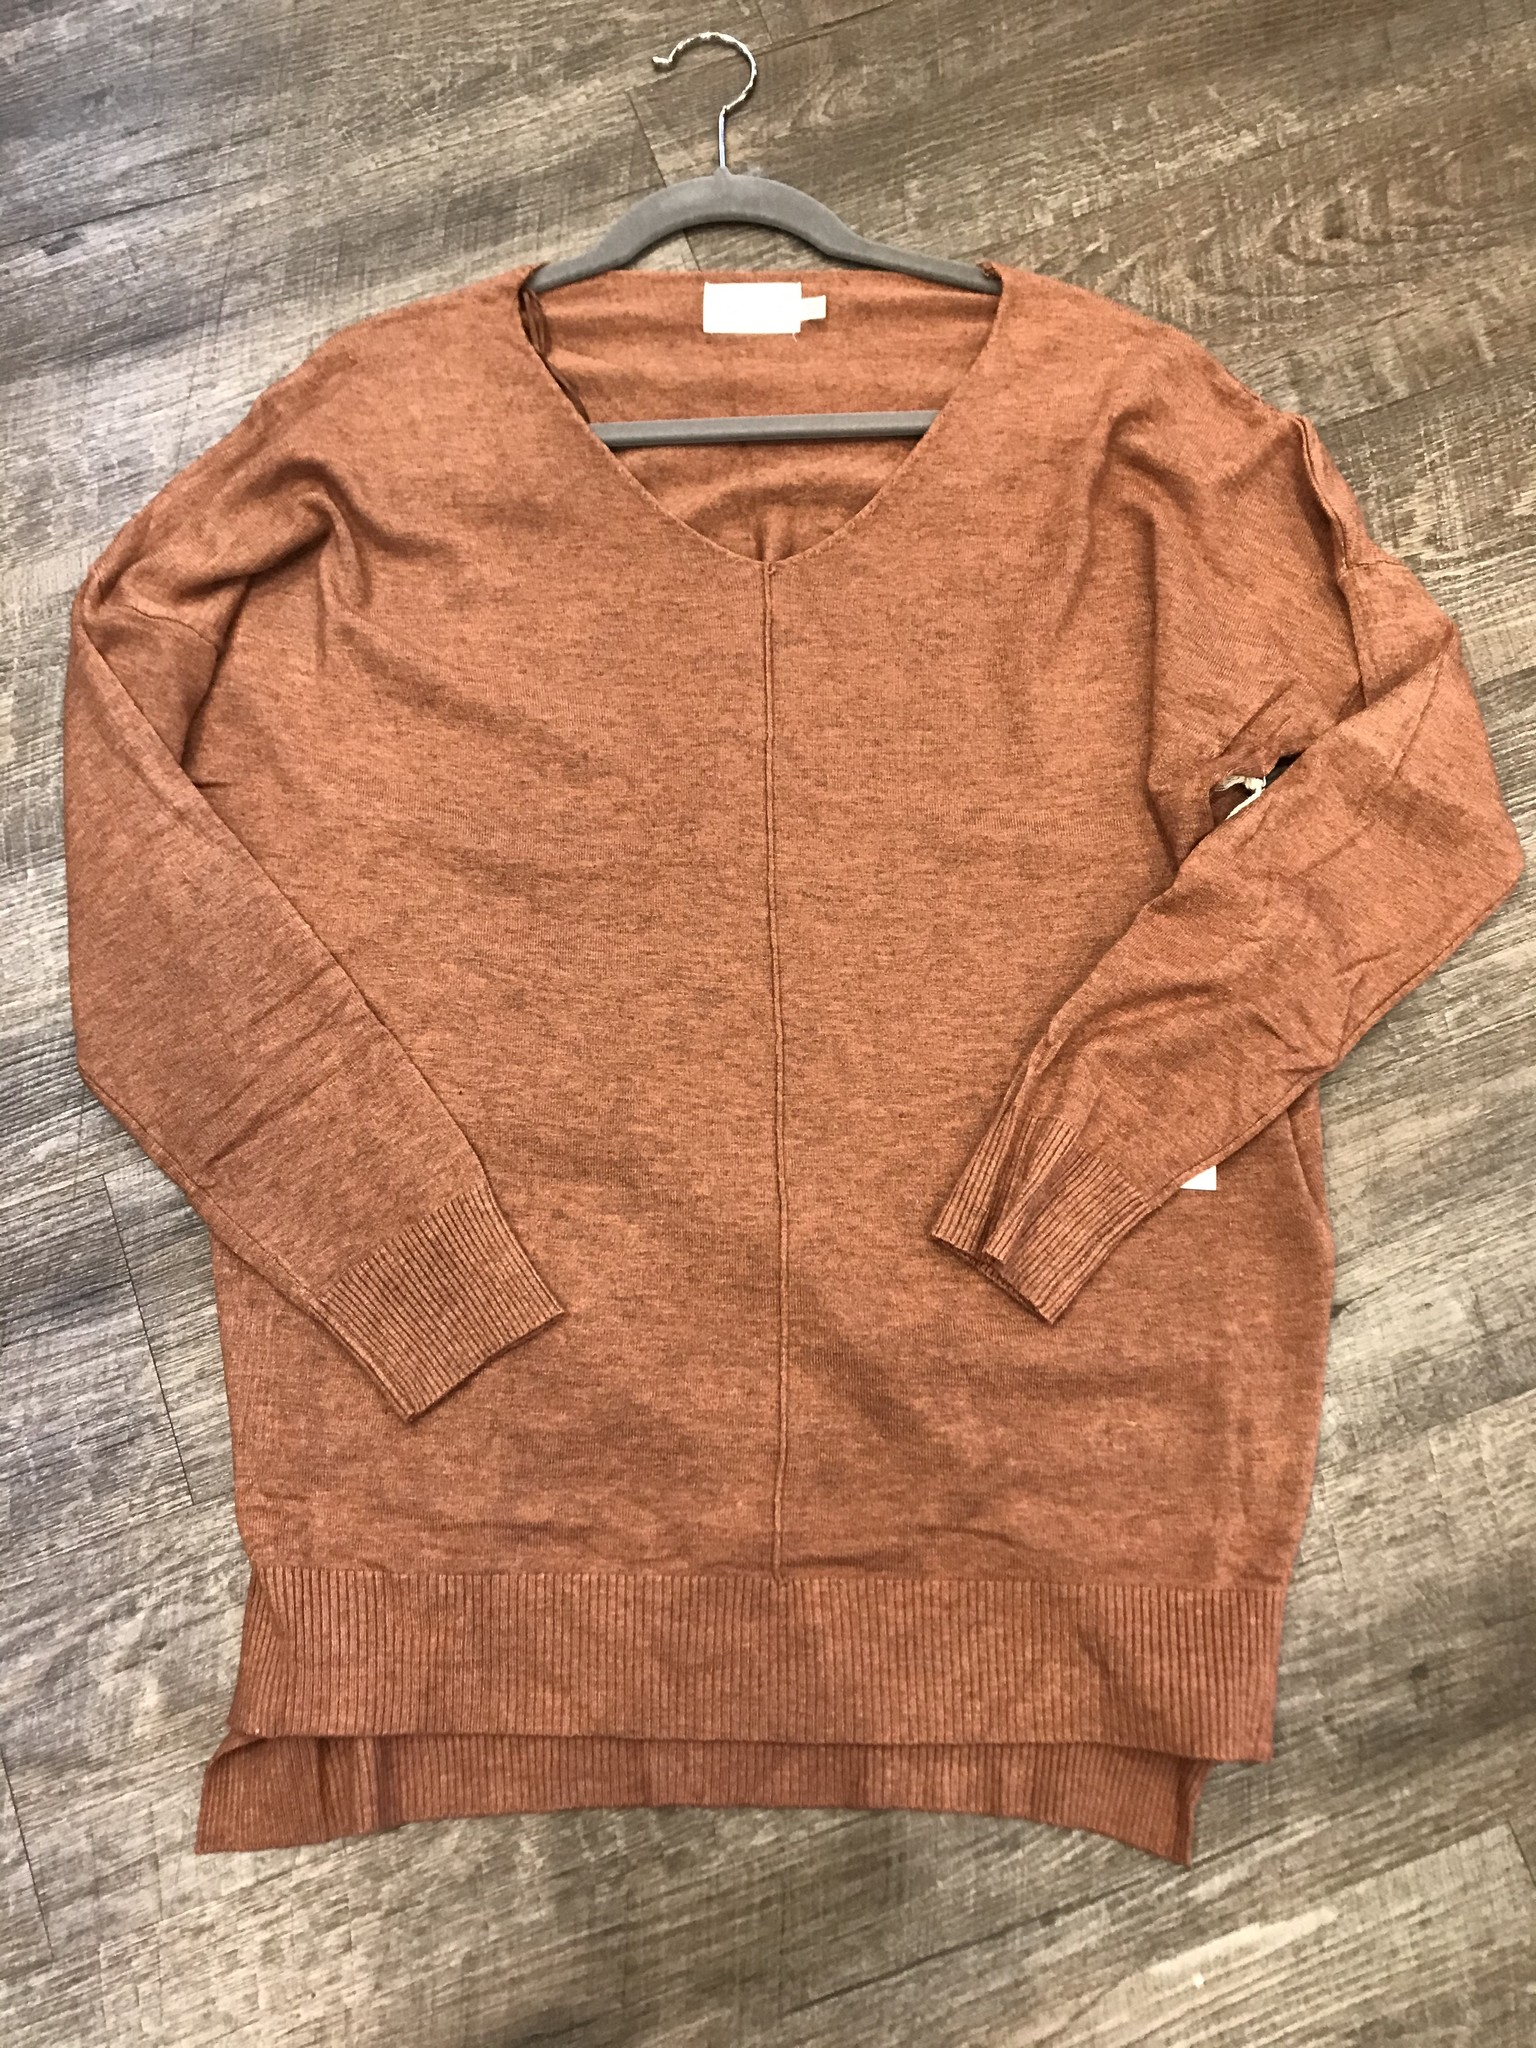 Dreamers The Fabulous Fall Sweater